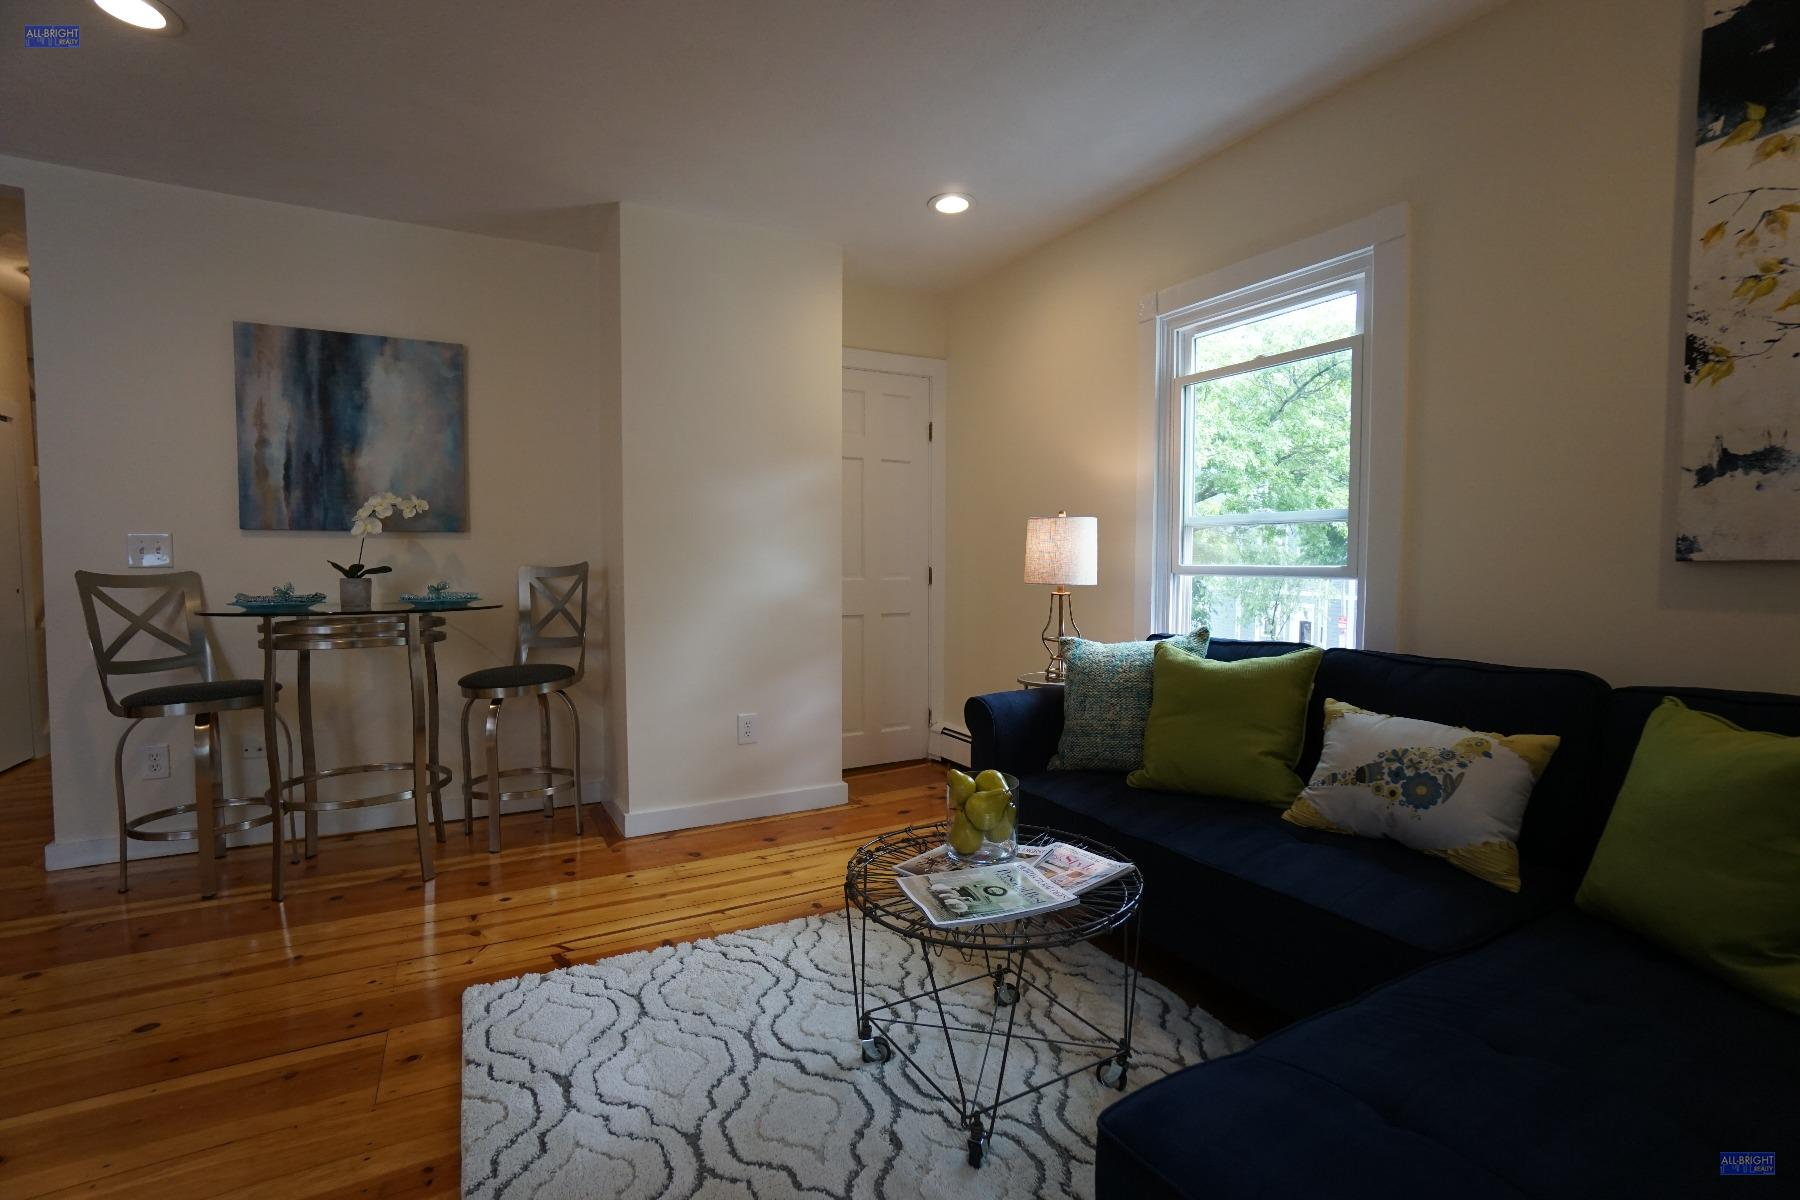 Cambridge 2bed 2bath! Pets NEGOTIABLE, 2nd Floor, Very close to Red Li